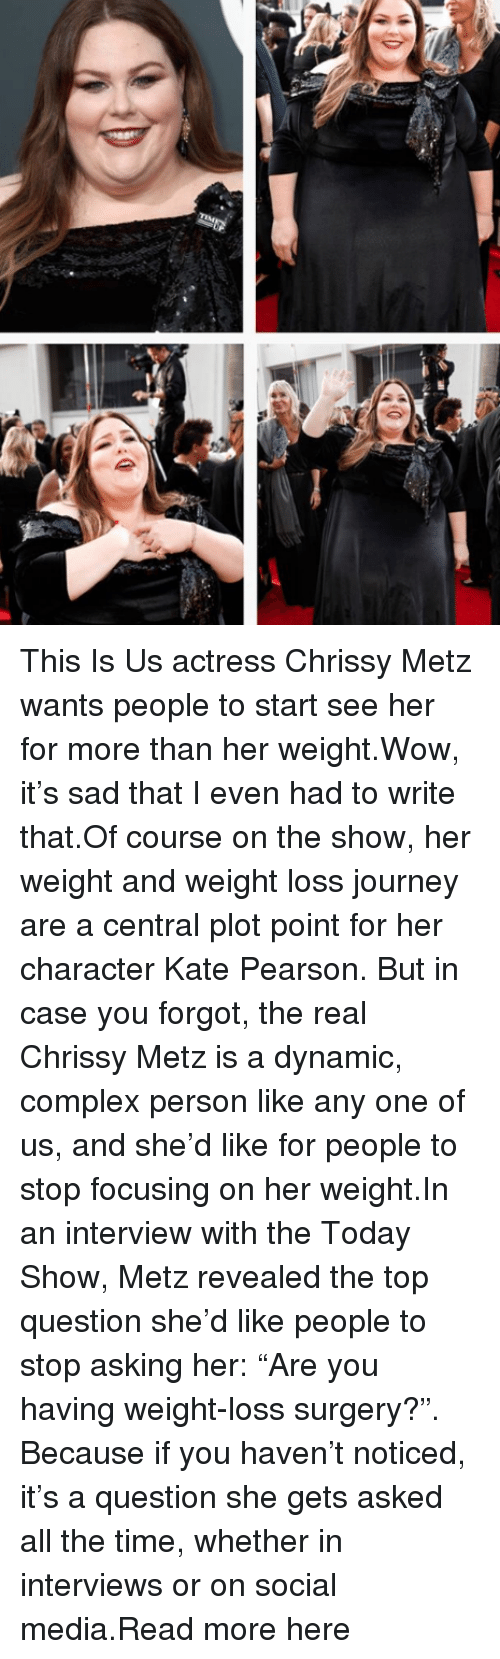 "Pearson: This Is Us actress Chrissy Metz wants people to start see her for more than her weight.Wow, it's sad that I even had to write that.Of course on the show, her weight and weight loss journey are a central plot point for her character Kate Pearson. But in case you forgot, the real Chrissy Metz is a dynamic, complex person like any one of us, and she'd like for people to stop focusing on her weight.In an interview with the Today Show, Metz revealed the top question she'd like people to stop asking her: ""Are you having weight-loss surgery?"". Because if you haven't noticed, it's a question she gets asked all the time, whether in interviews or on social media.Read more here"